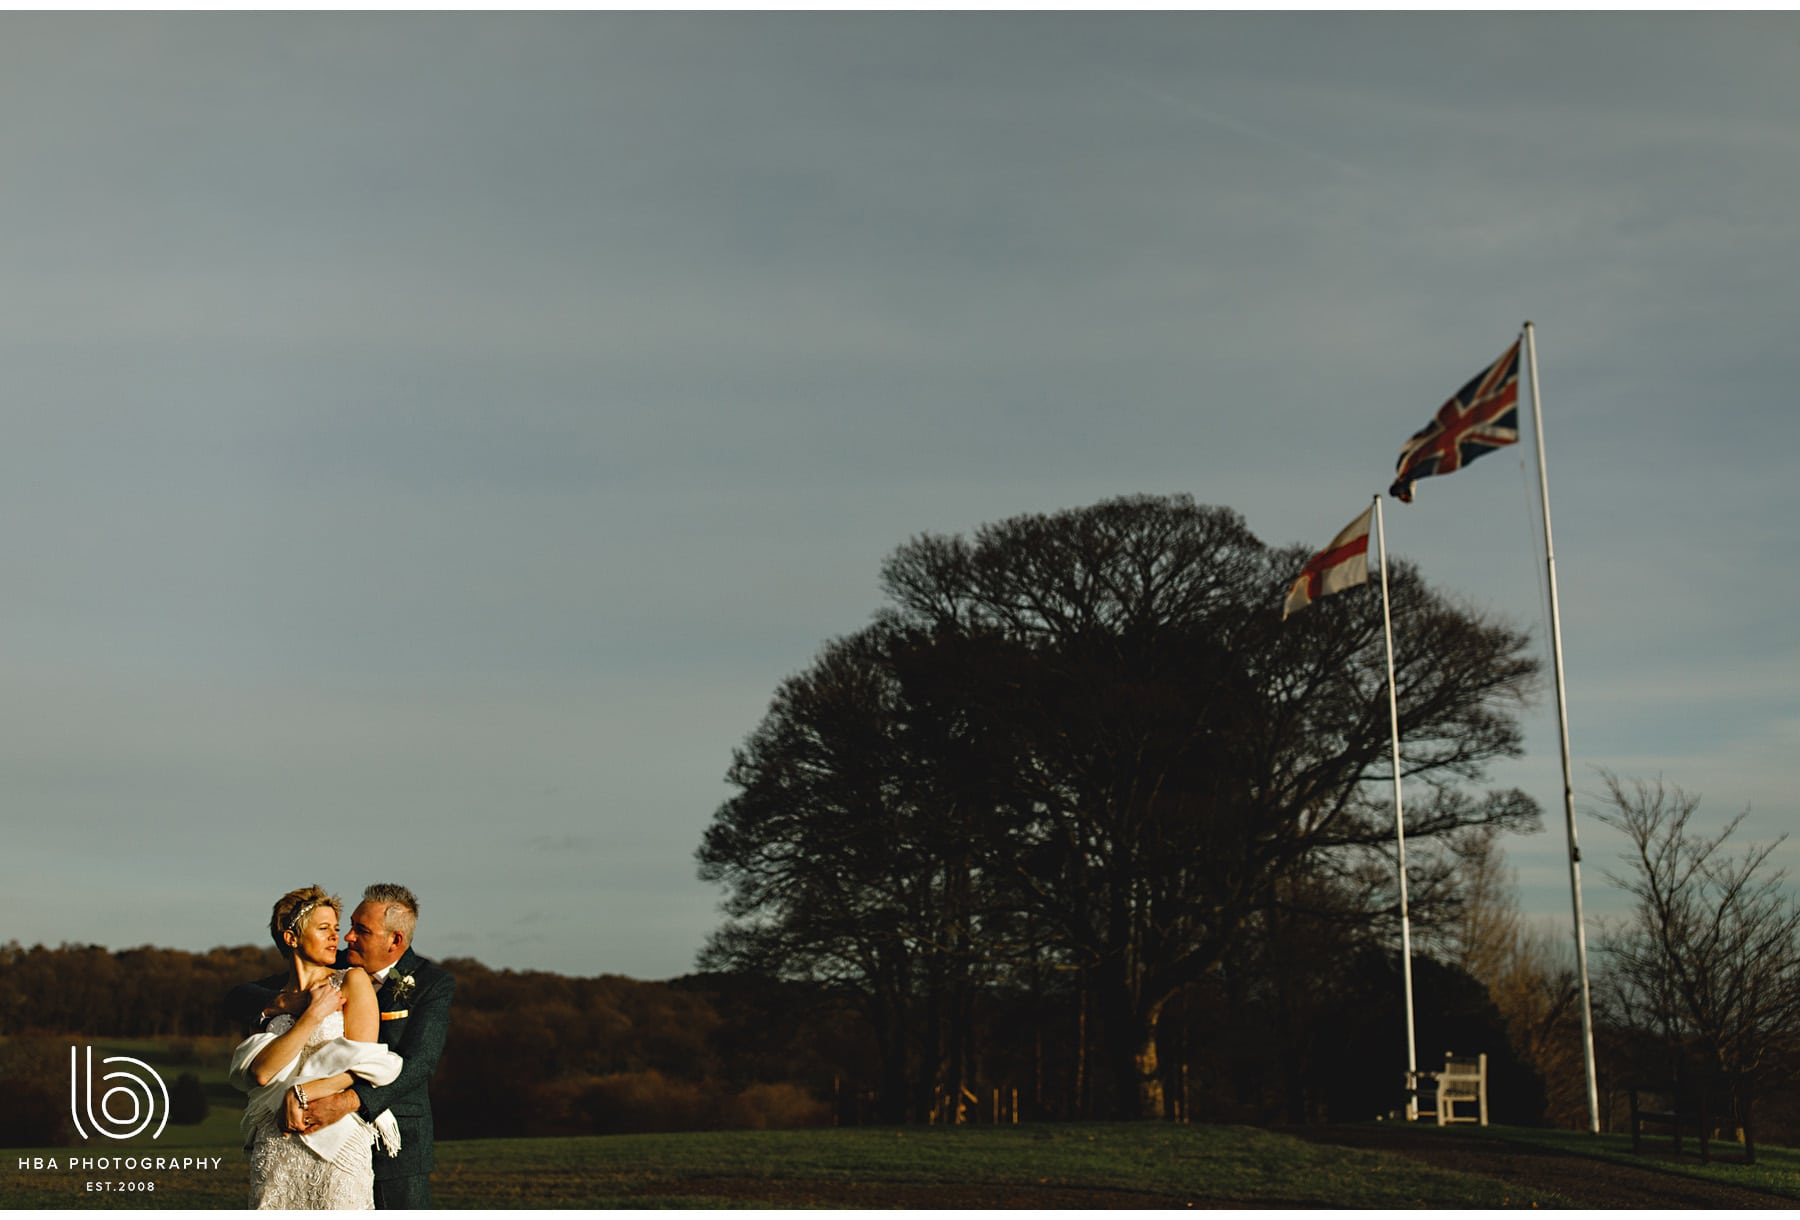 the bride & groom on the golf course